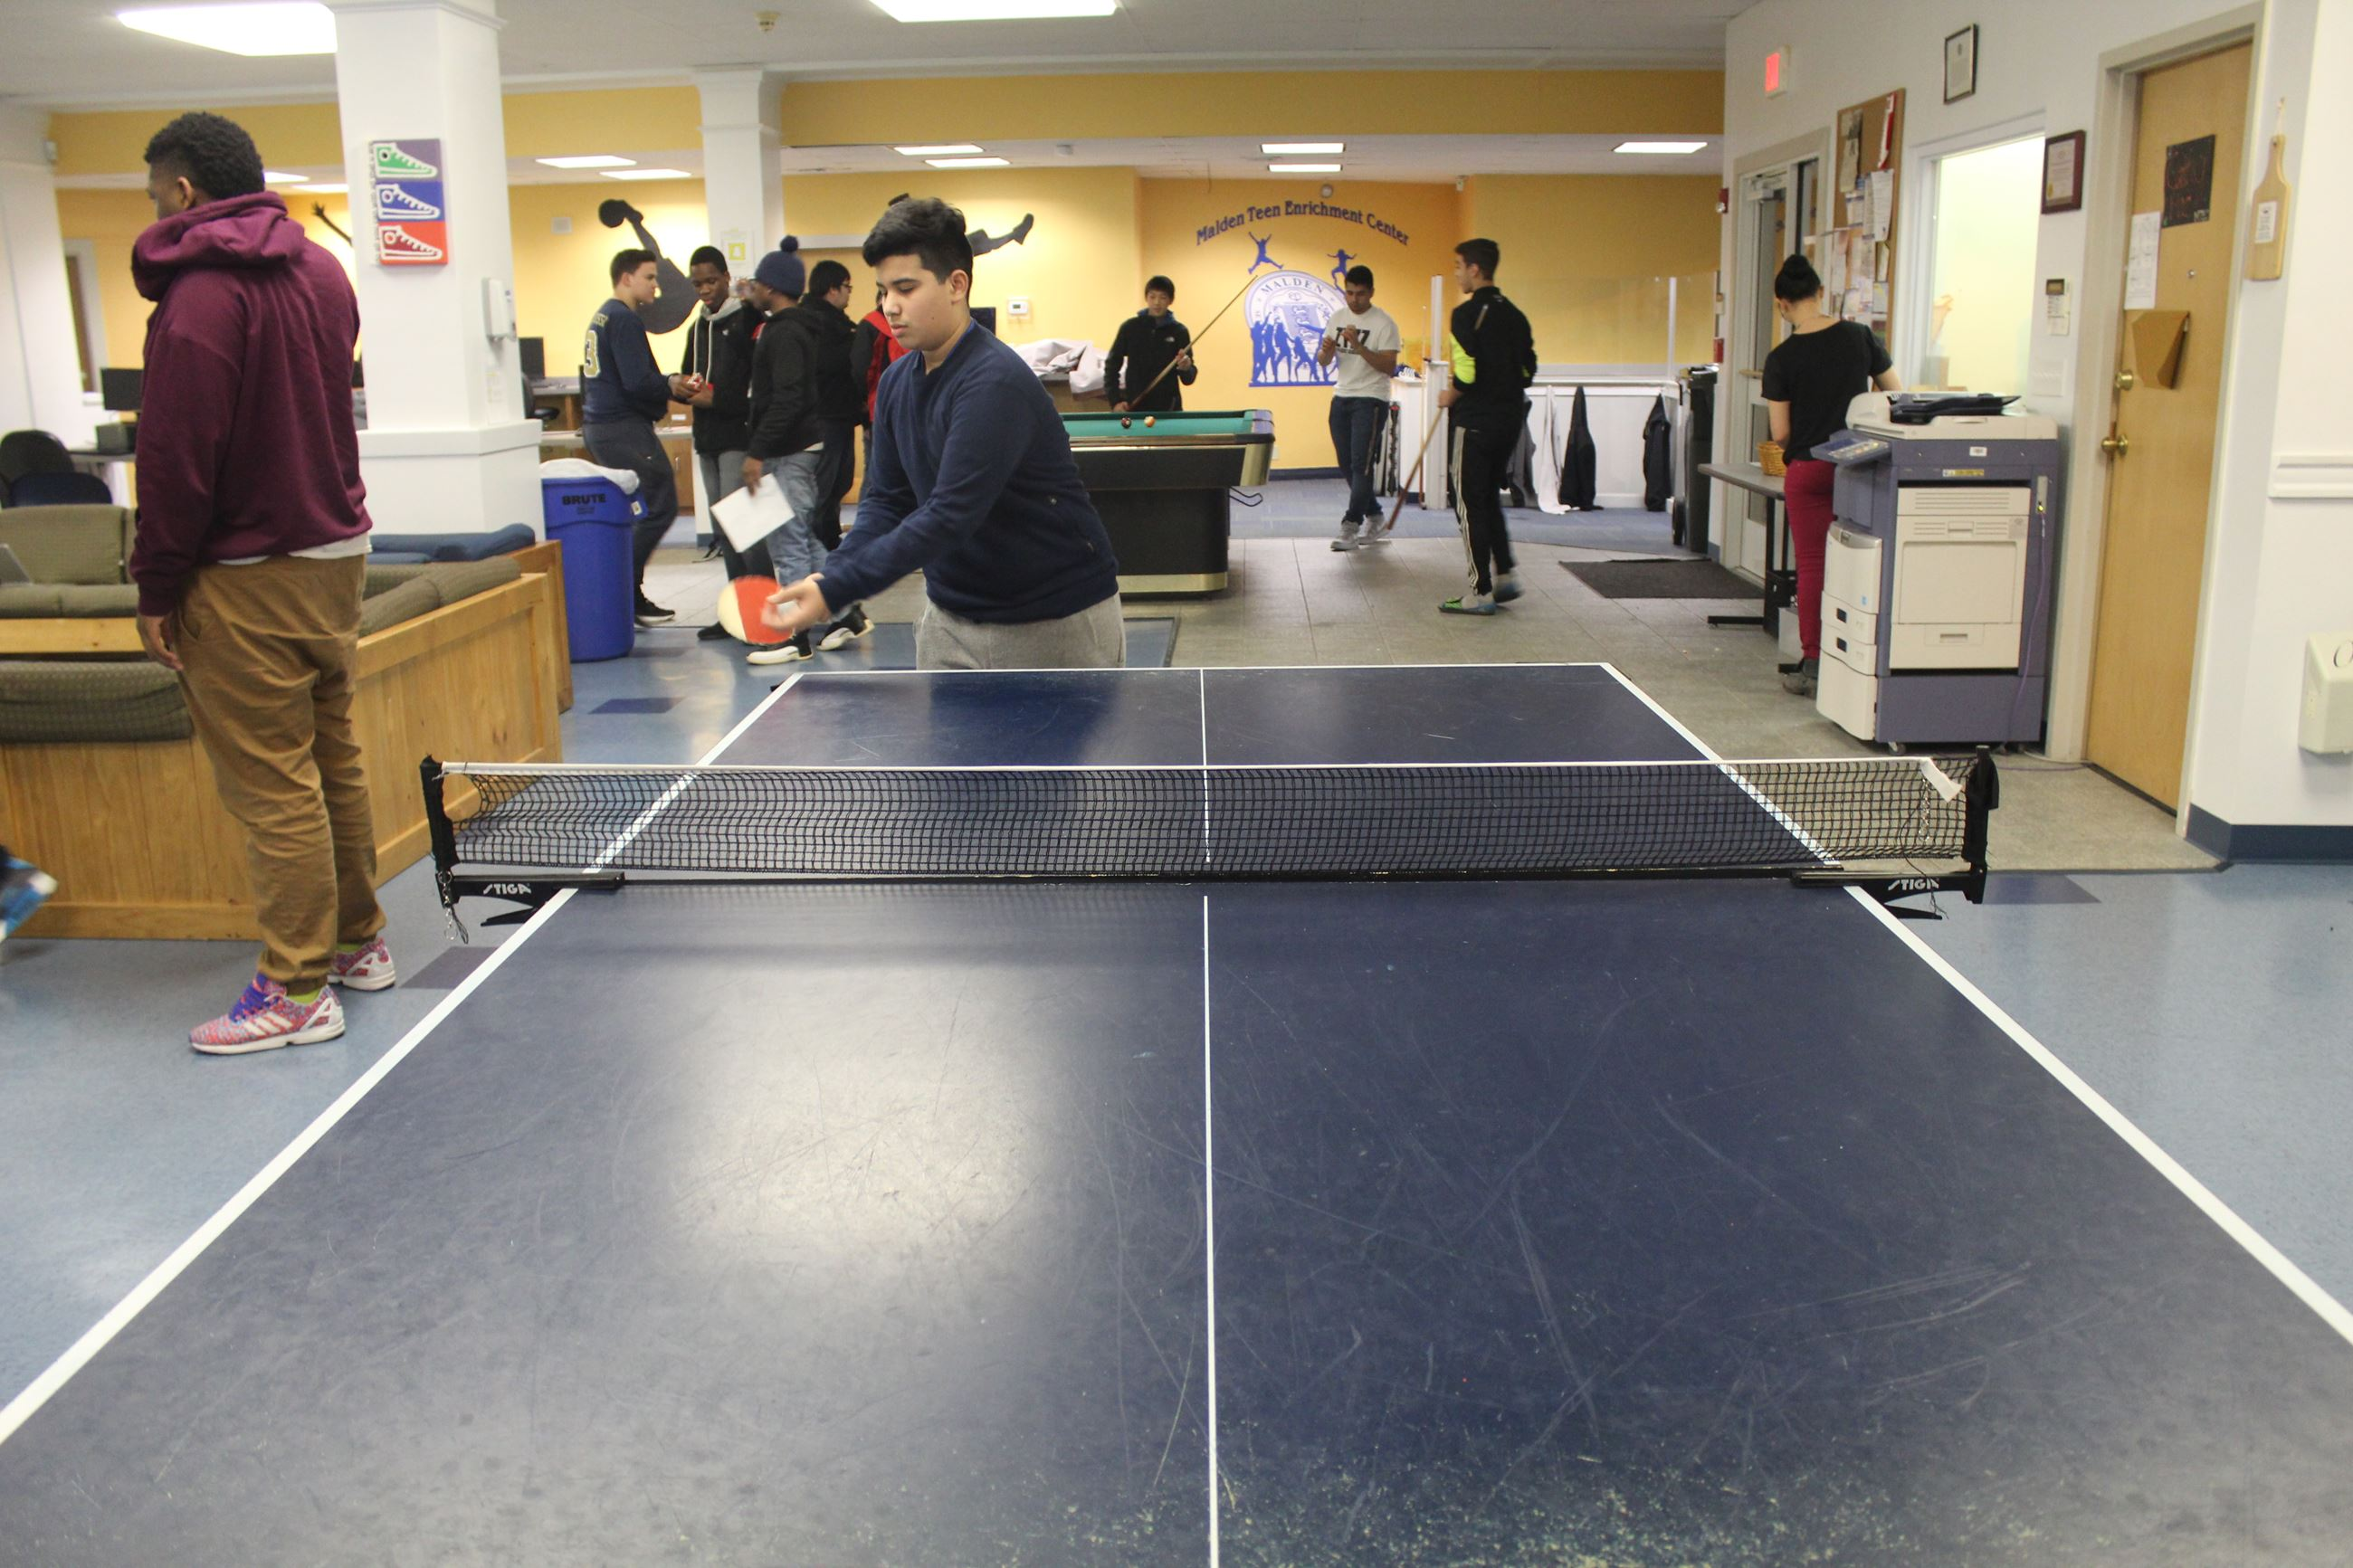 Teens Playing Ping Pong